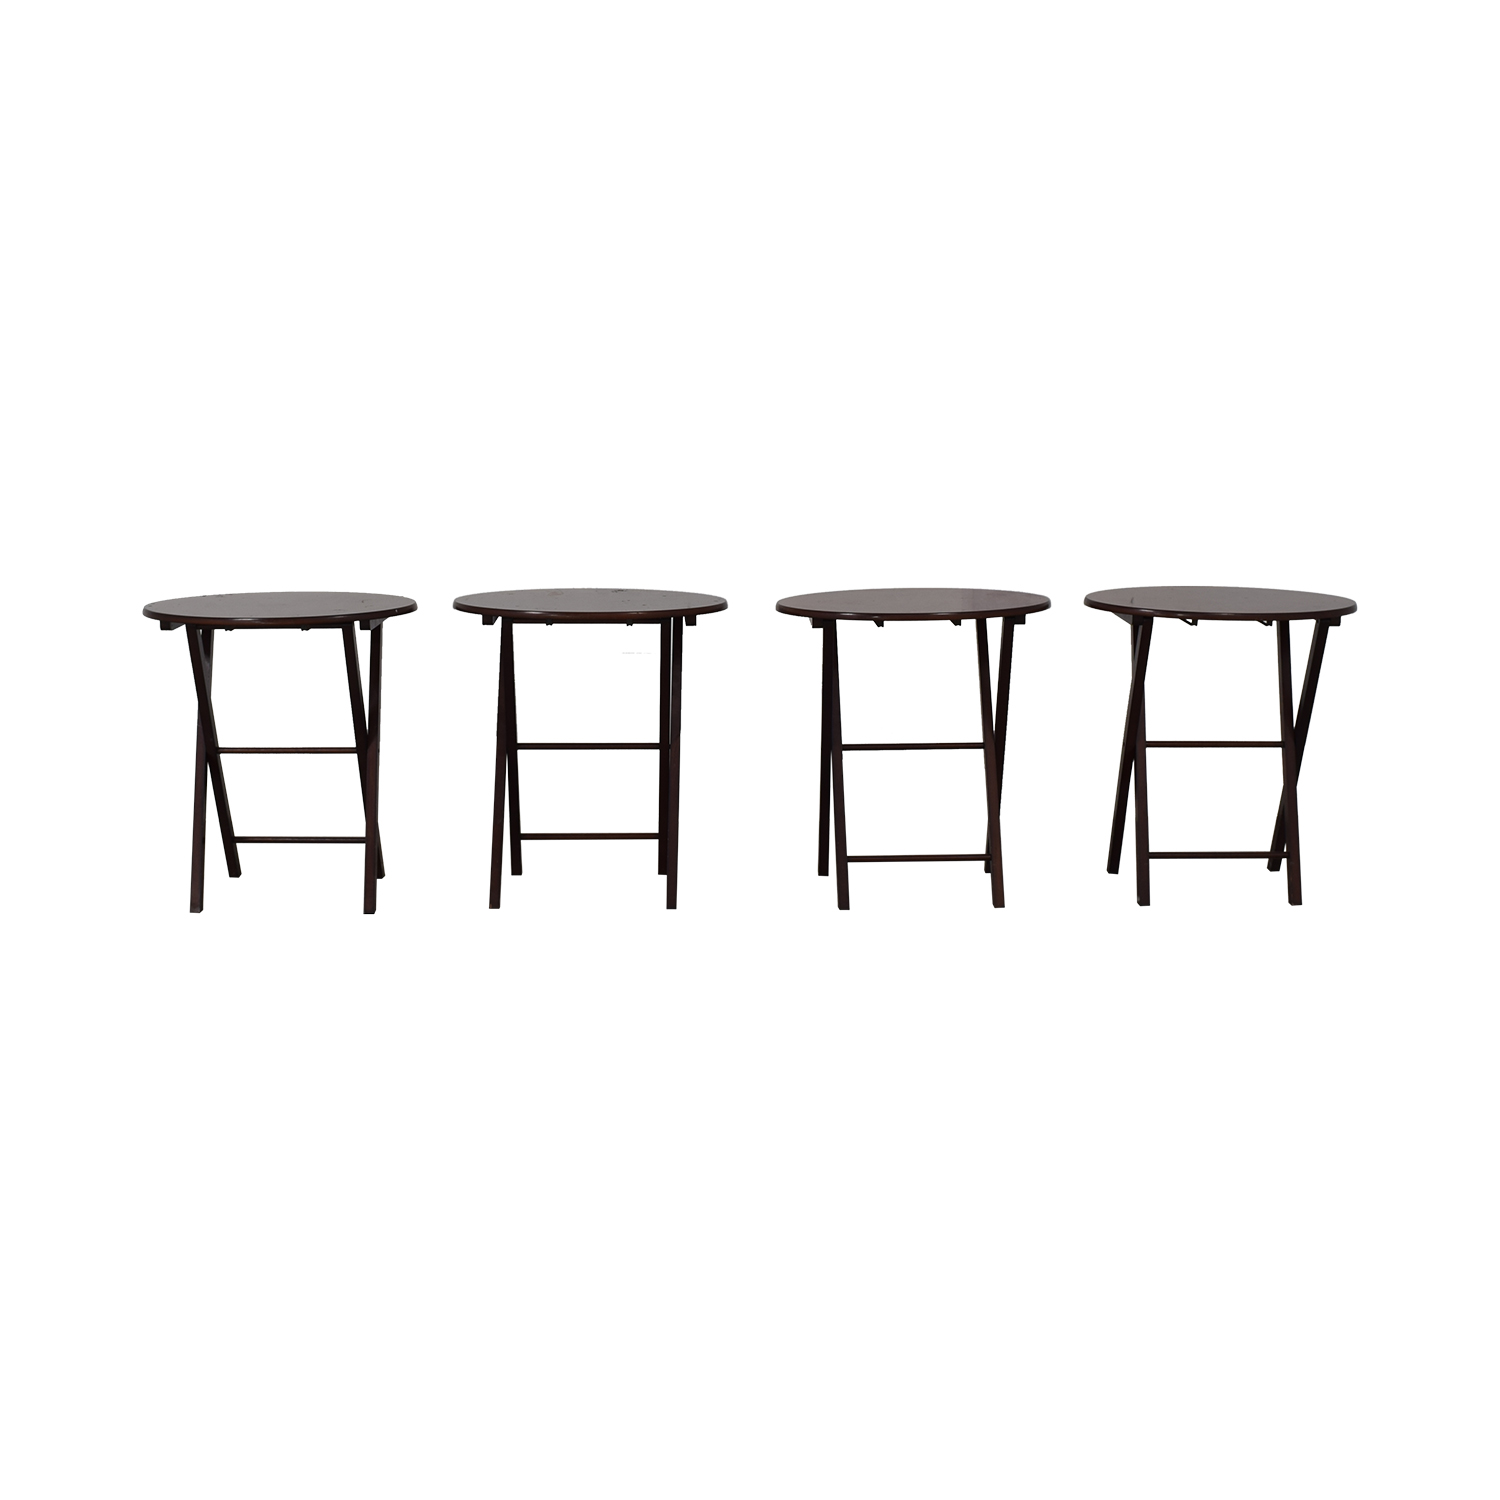 Classic Wood Folding Cocktail Tables on sale